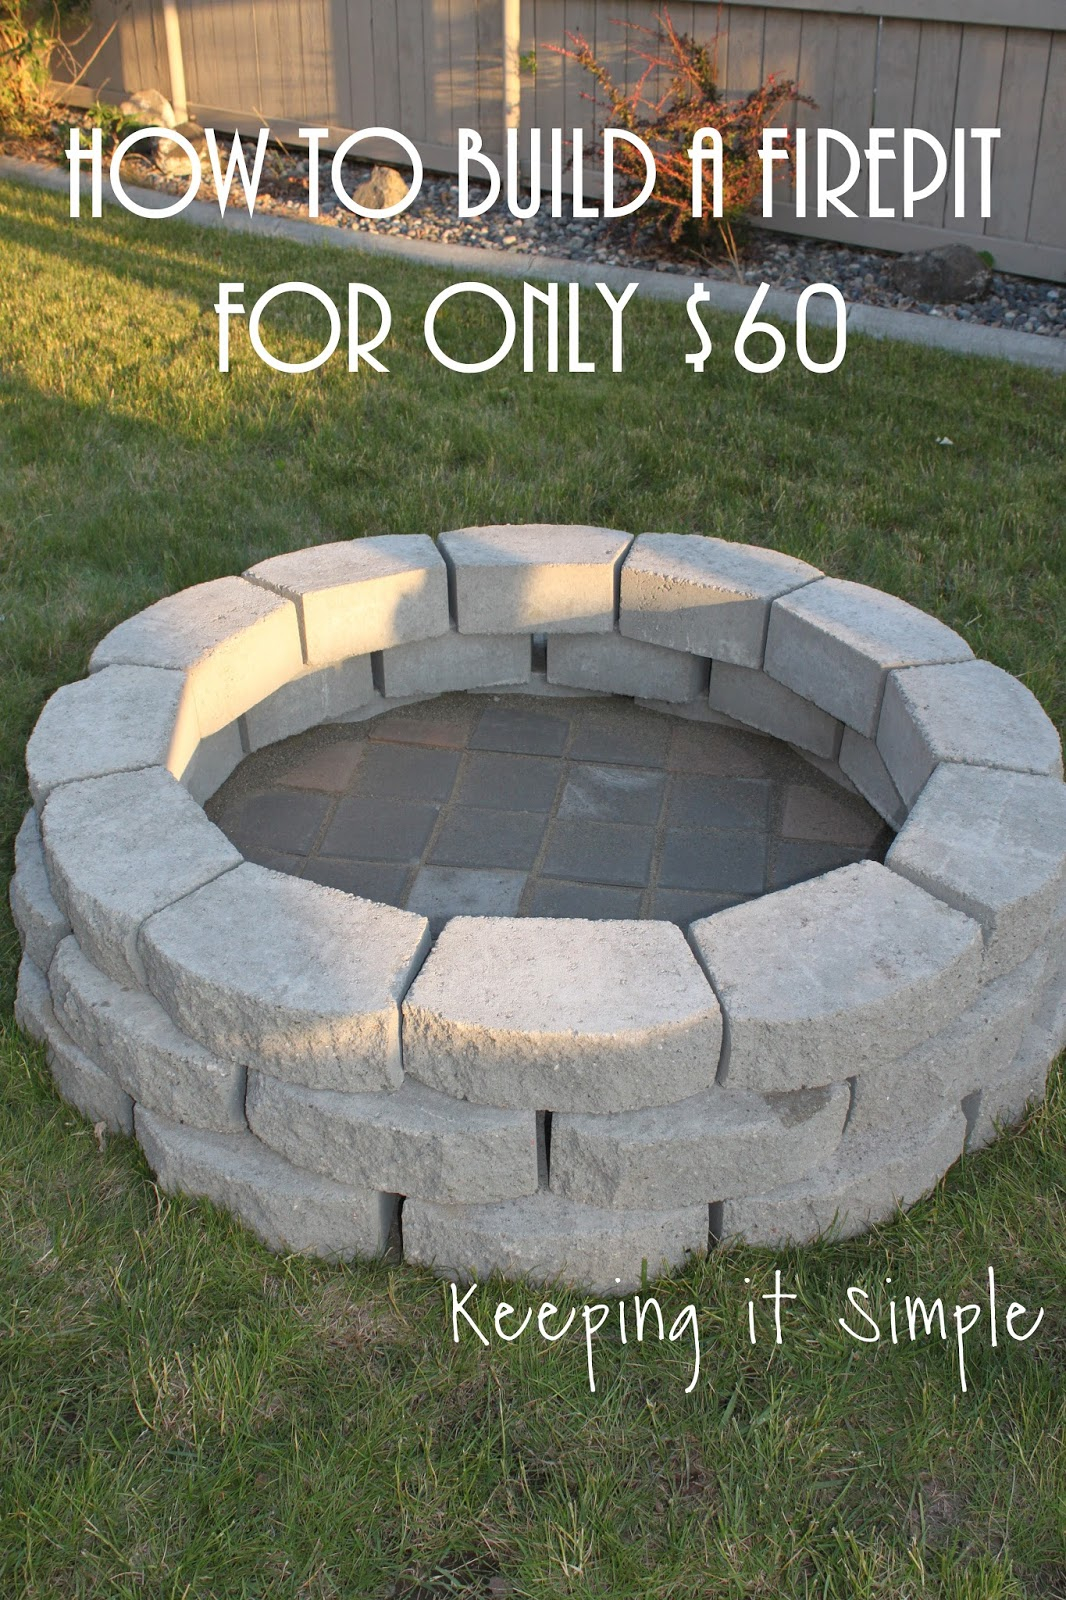 How To Build A Diy Fire Pit For Only 60 Keeping It Simple regarding 15 Smart Concepts of How to Make Fire Pit Ideas For Small Backyard